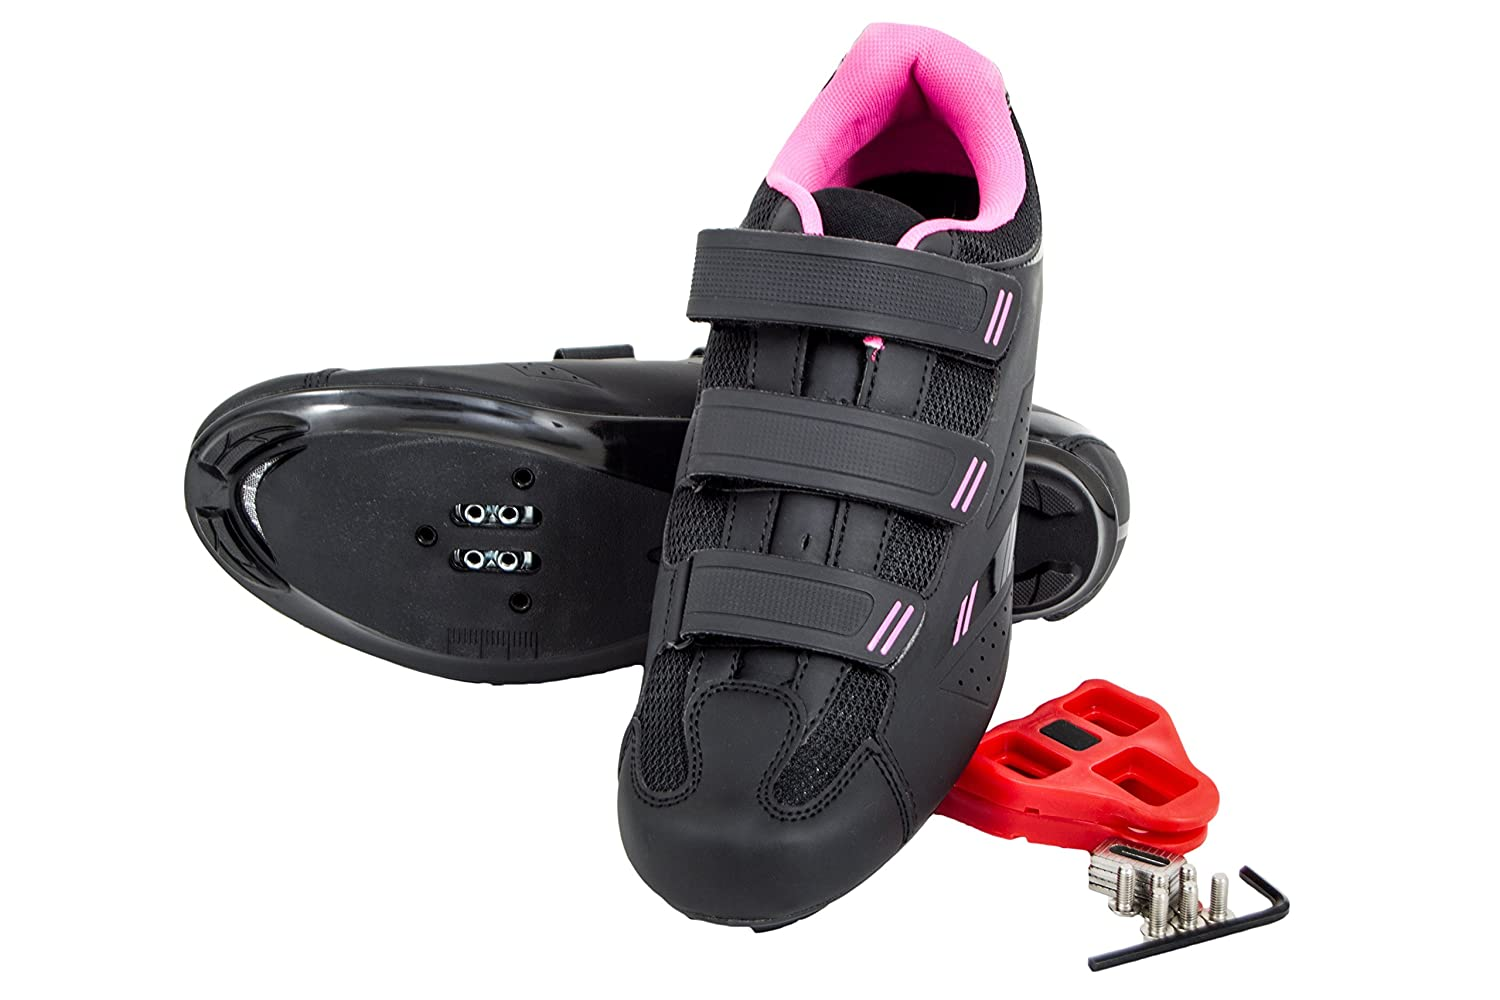 Tommaso Pista 100 Women's Spin Class Ready Cycling Shoe with Compatable Cleat - Black/Pink B076T879VB 41 EU/ 10 US W|Look Delta